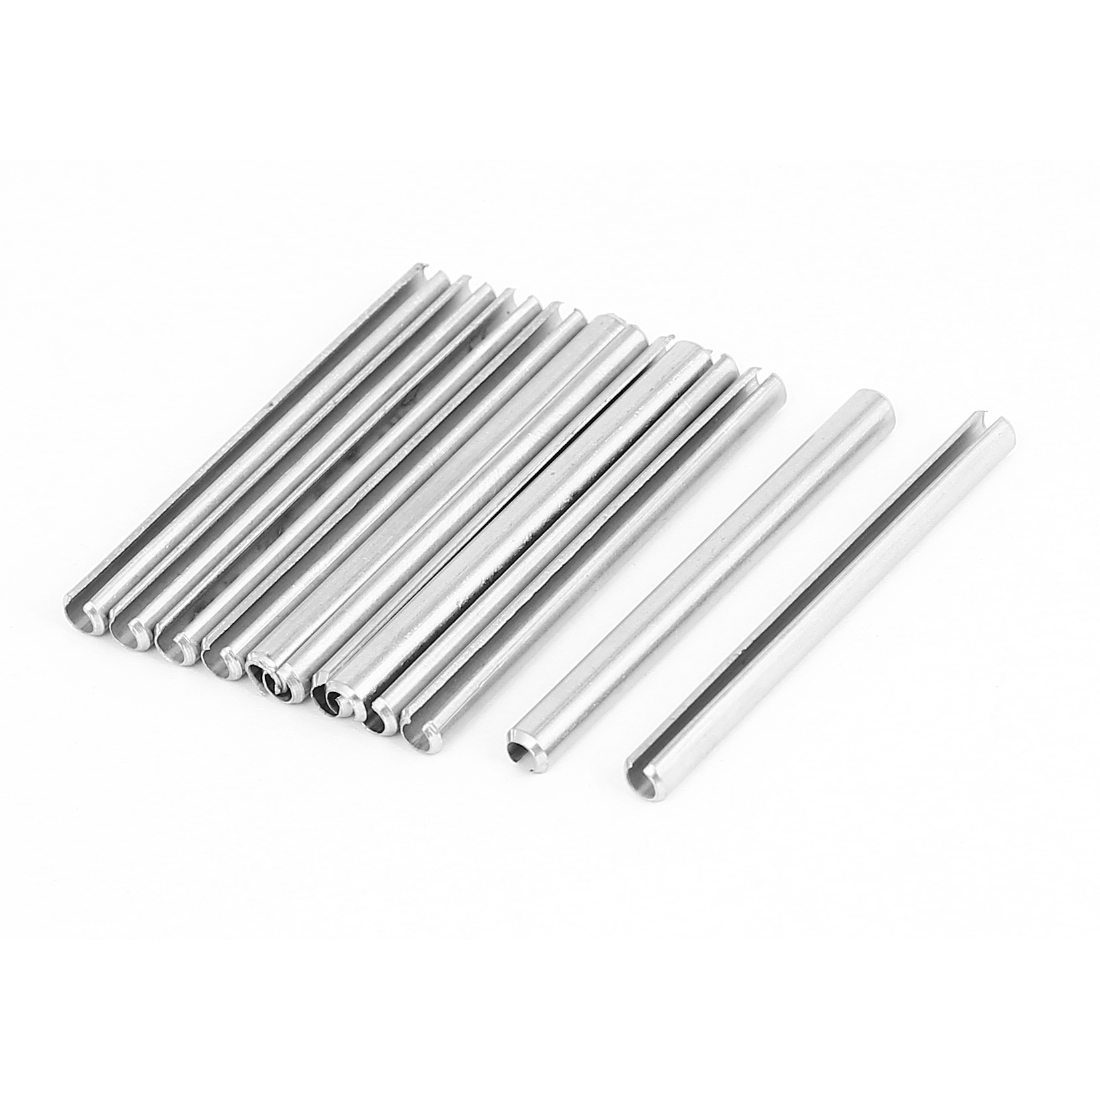 M4x50mm 304 Stainless Steel Split Spring Roll Dowel Pins Fasteners 10Pcs